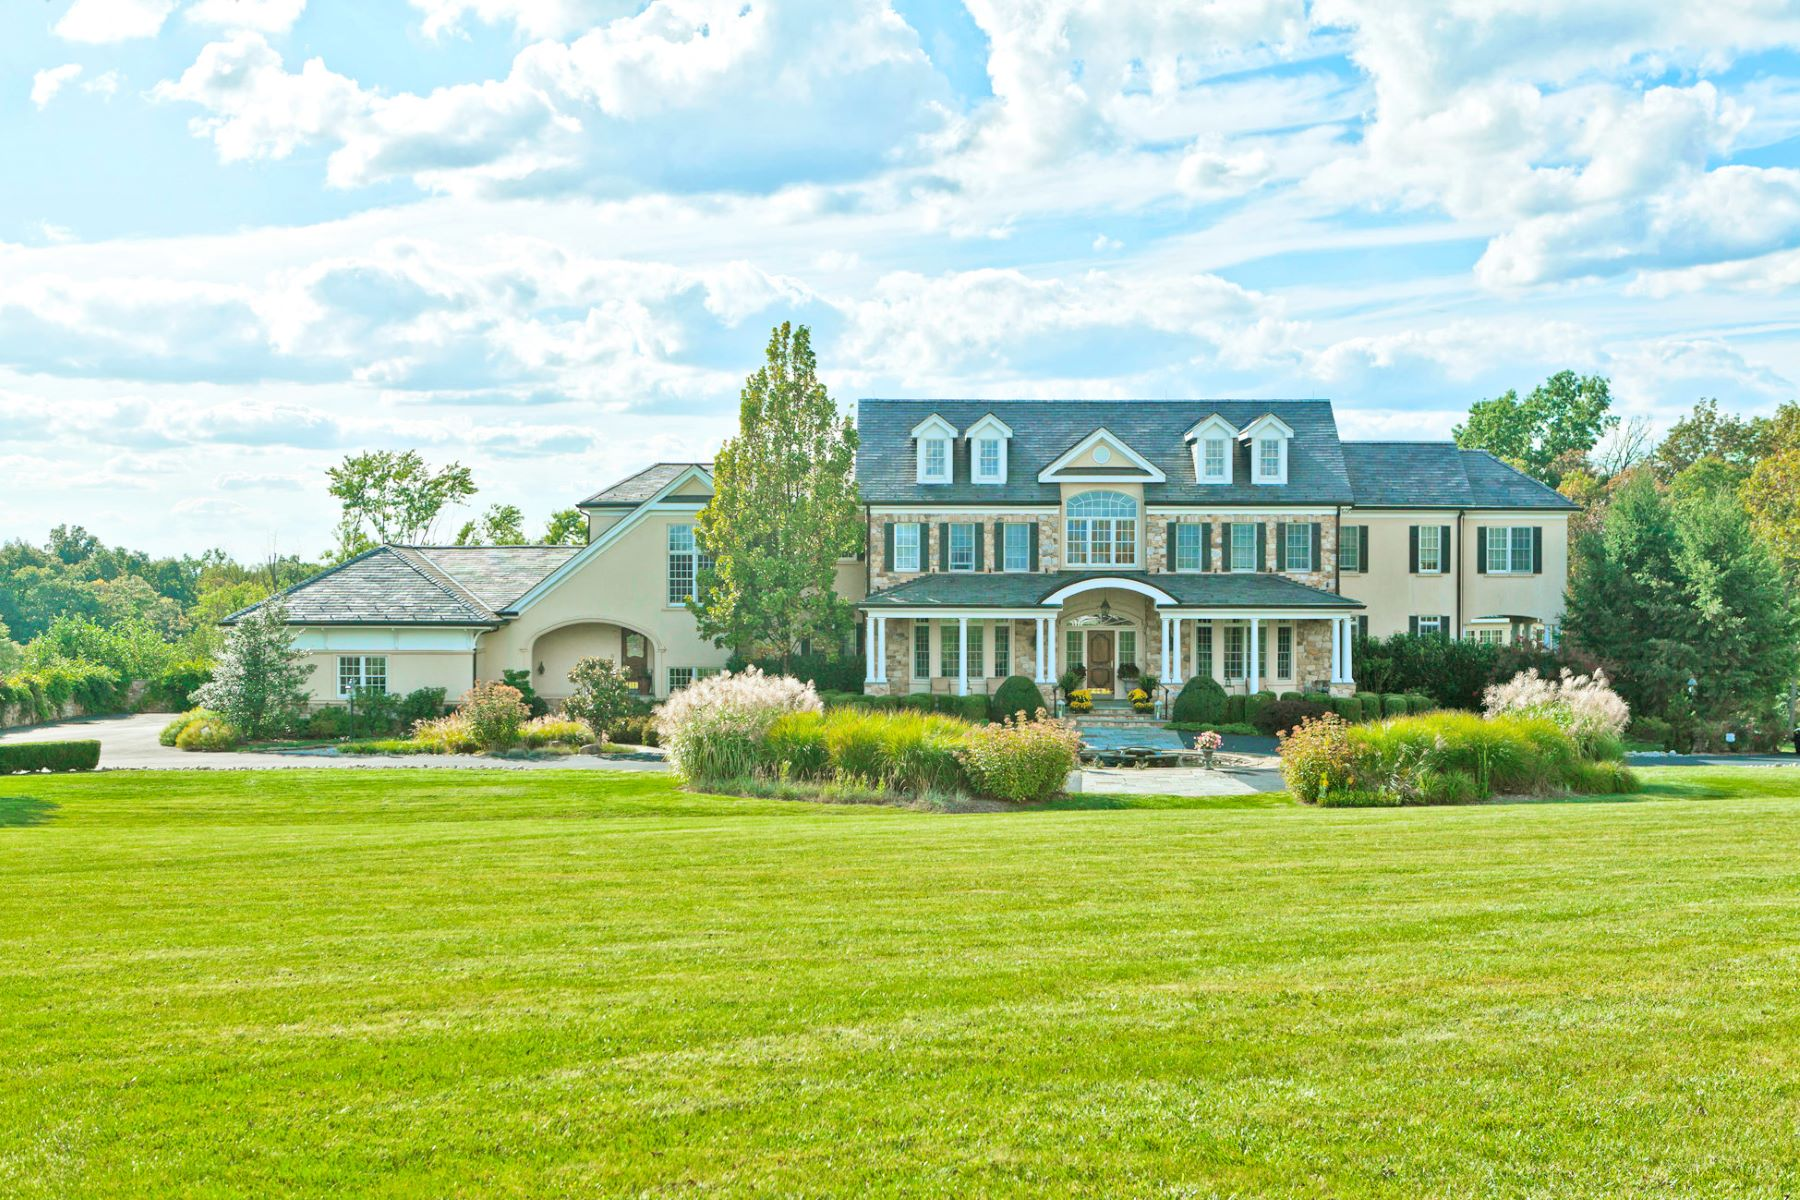 Property vì Bán tại The Ultimate Wall Street Getaway 131 - 133 Harbourton Woodsville Road Hopewell Township, Lambertville, New Jersey 08530 Hoa Kỳ